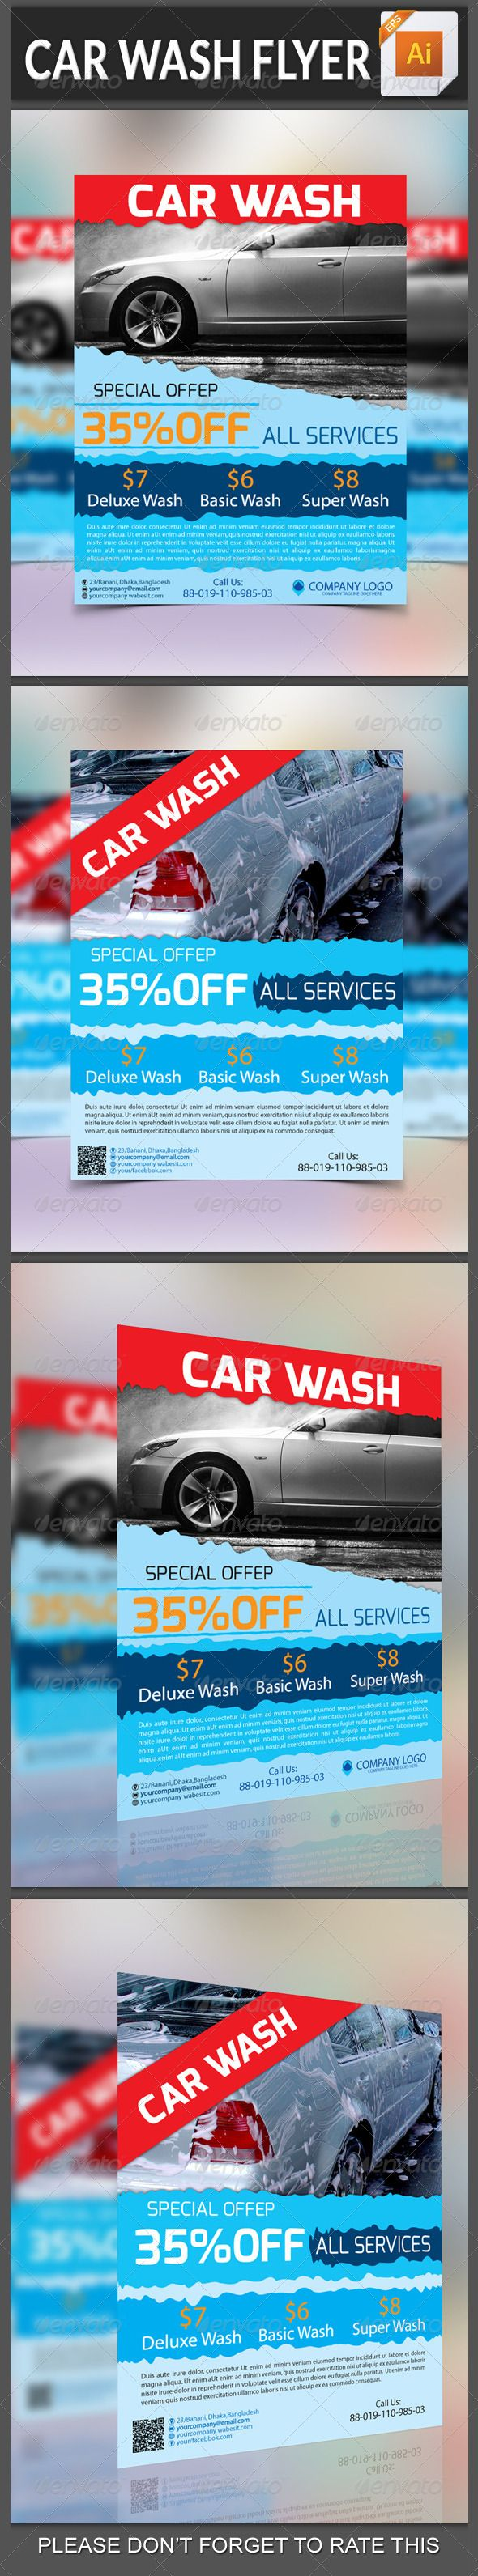 car wash flyer best business flyer templates pinterest car